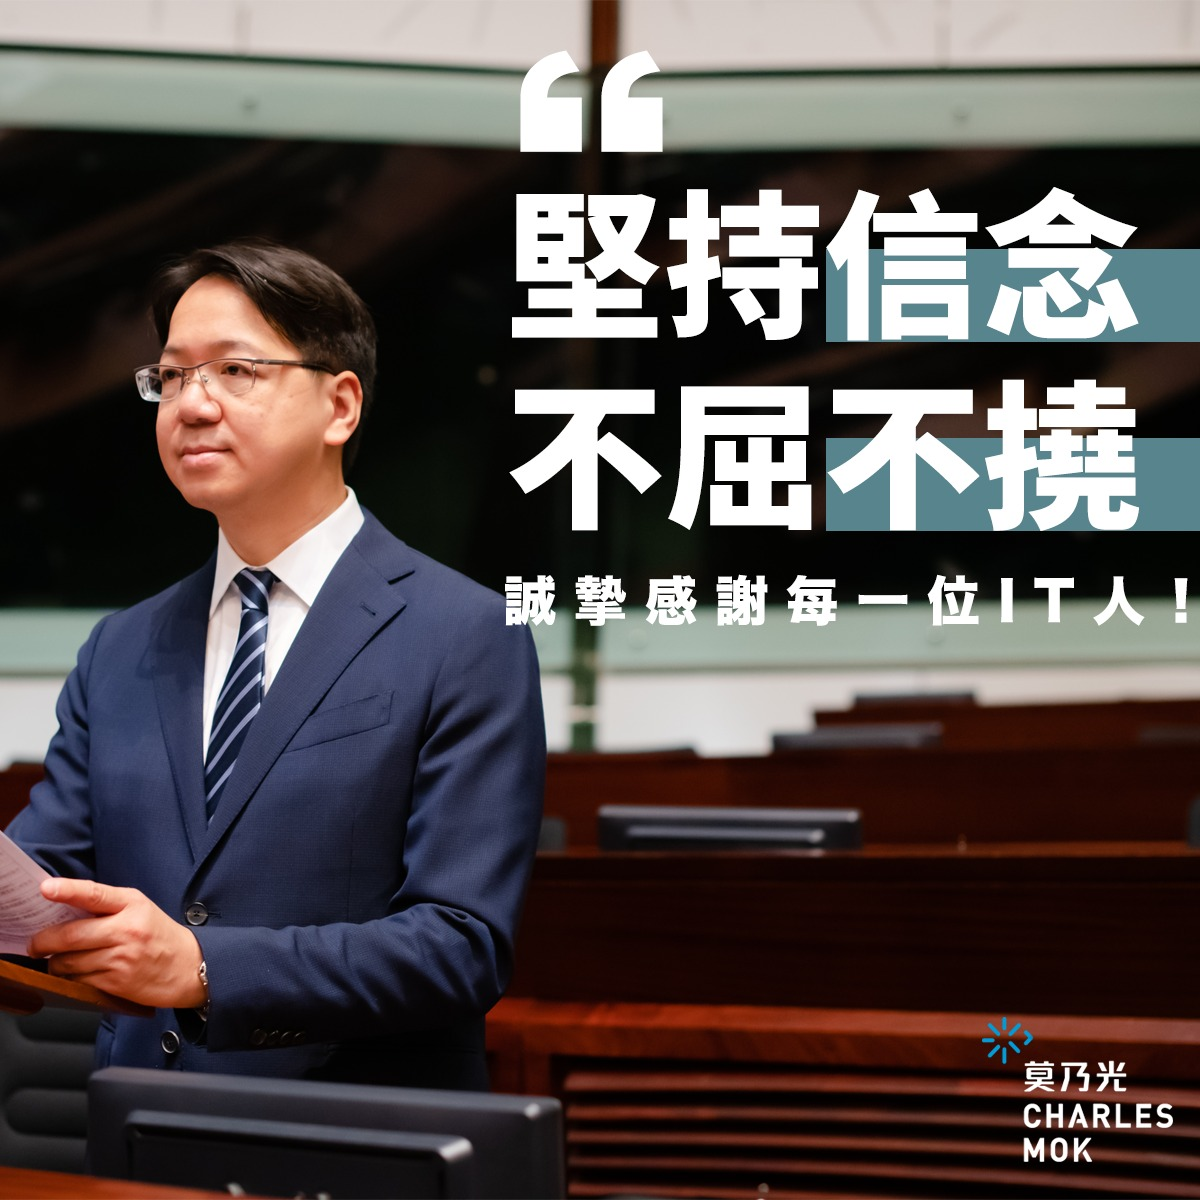 link to [Policy proposal] Charles Mok's policy recommendations for 2019/20 Budget